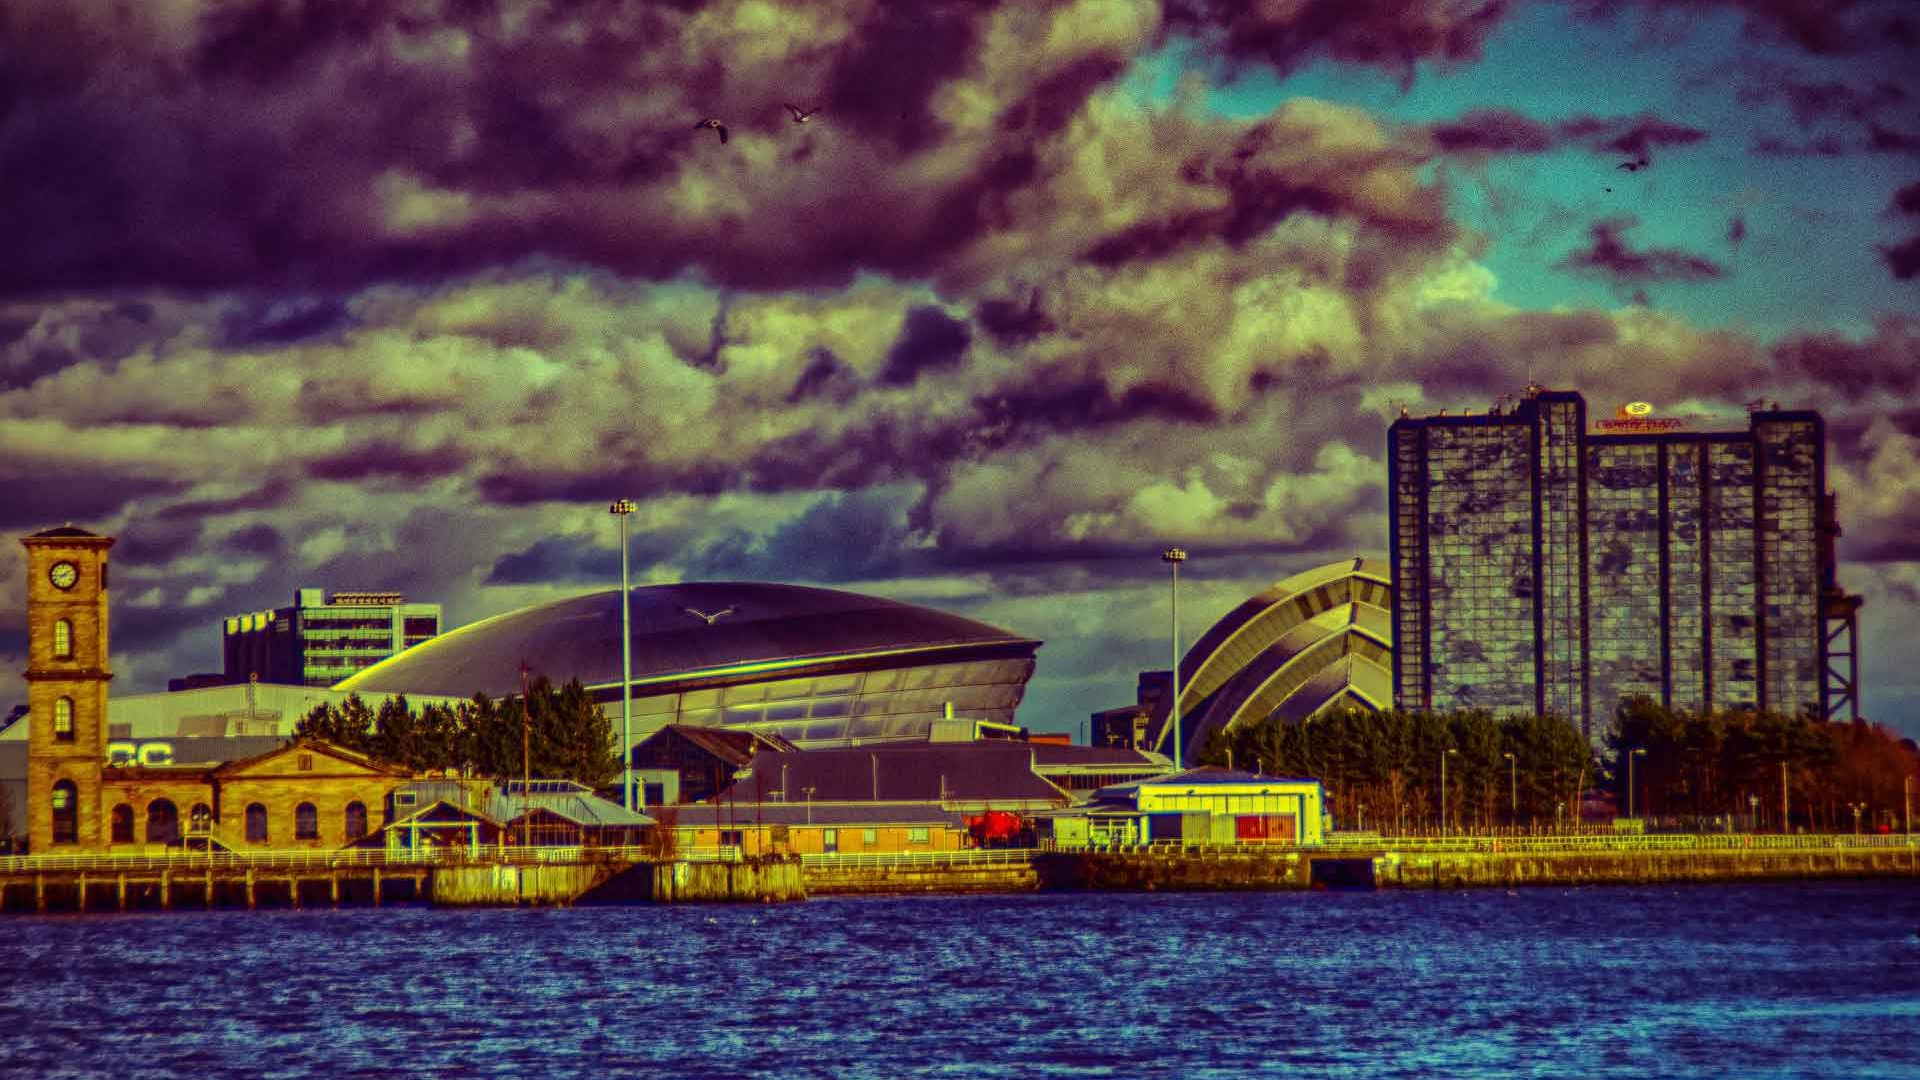 Glasgow- The Hydro from the River Clyde